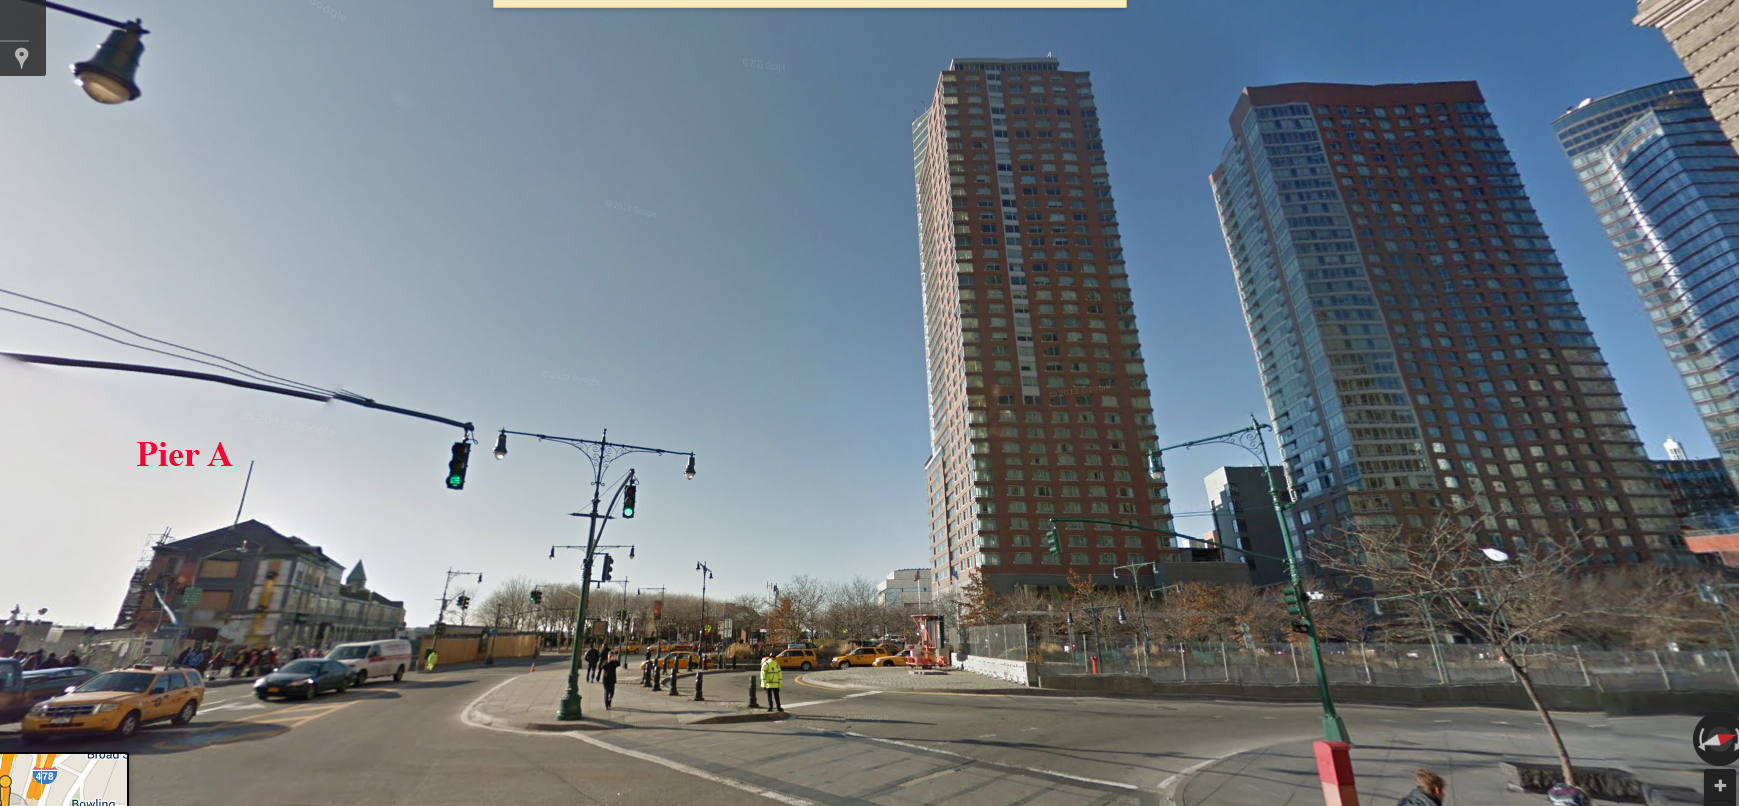 Letter to state liquor authority do not allow the pier a for 41 river terrace new york